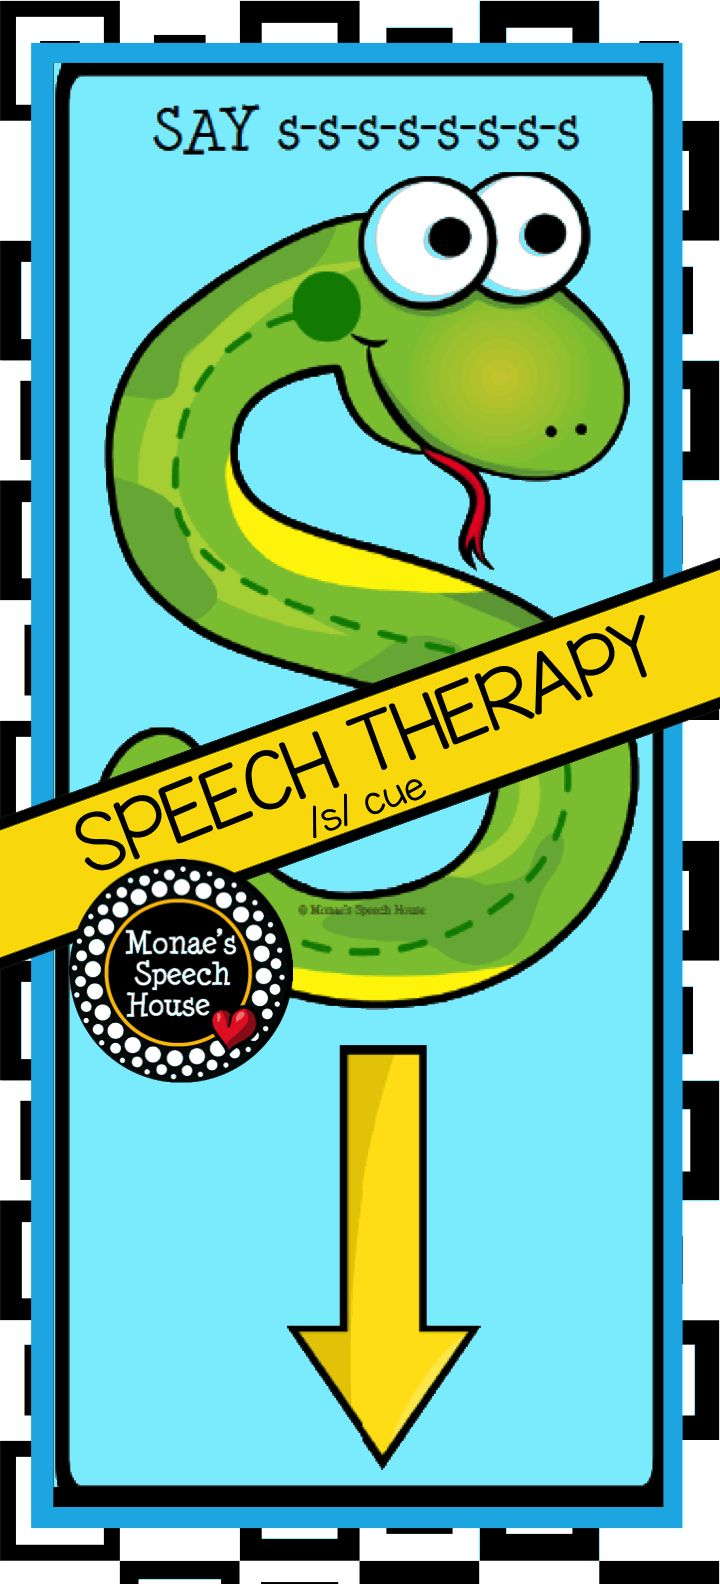 Speech Therapy Visual Cues! Snake cues for /s/ and /s/ blends. This bundle is packed with speech sound posters, speech room decor, speech worksheets, homework sheets, and tons more! Articulation, phonology, speech sounds for speech therapy.